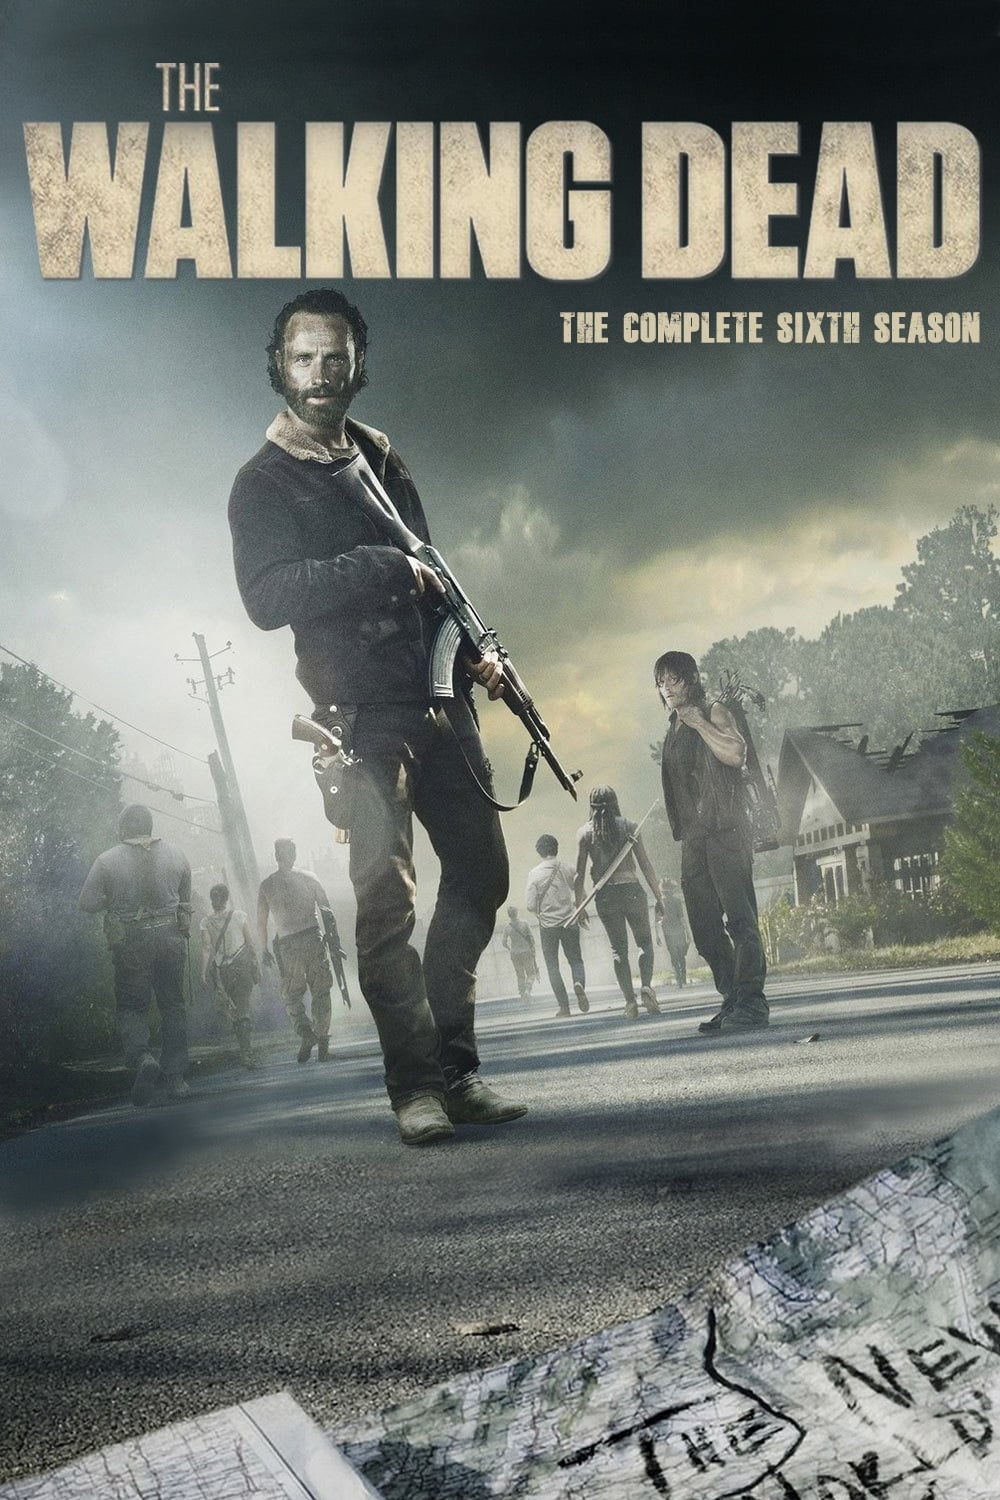 Assistir The Walking Dead - 6x07 - Legendado - Pense Rápido Online Legendado 1080p